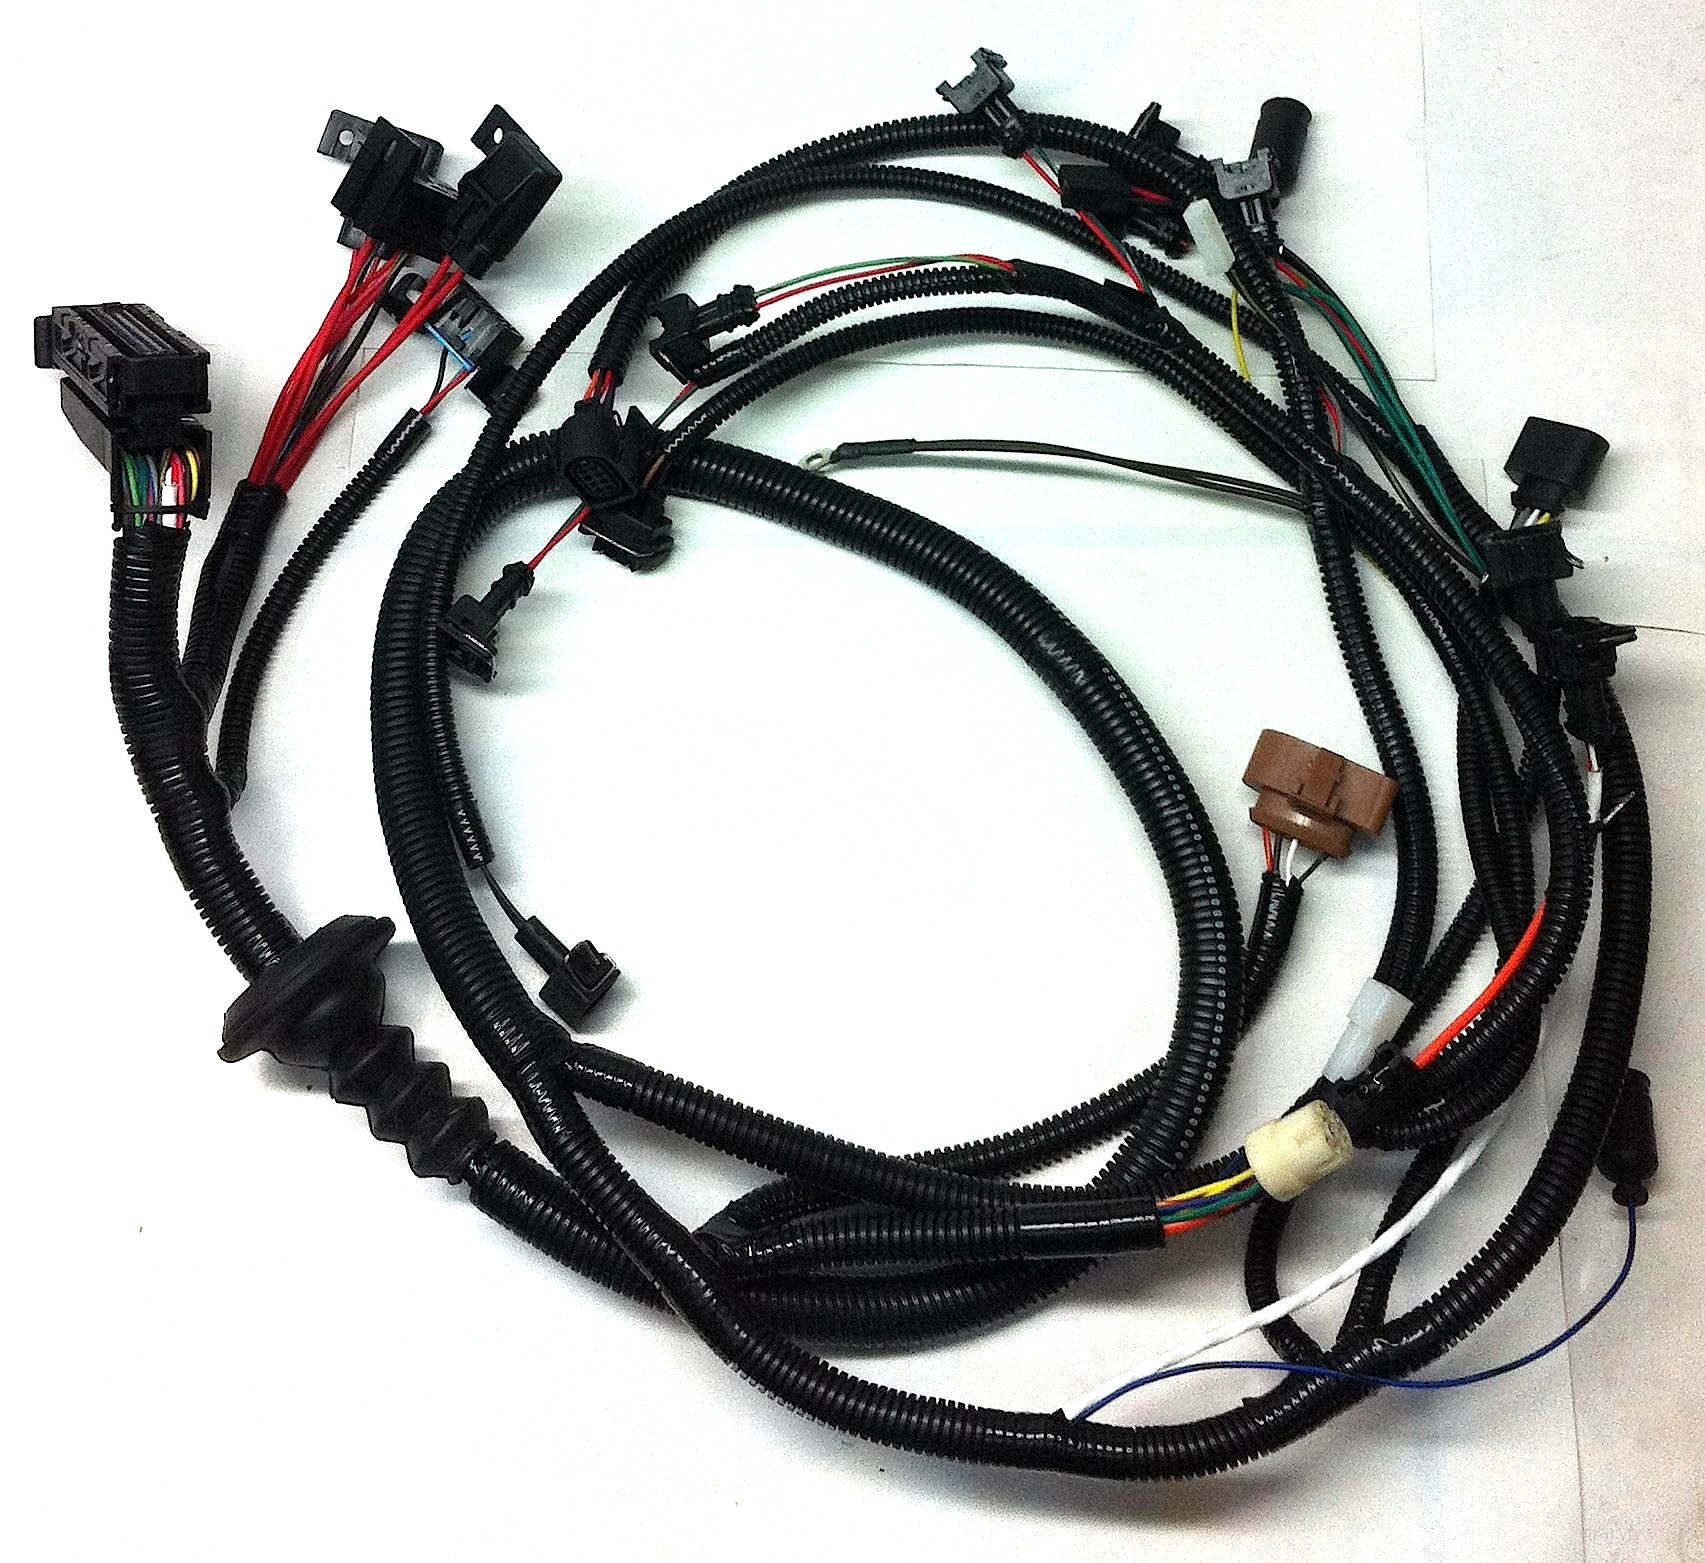 Wiring_Harness_2LR 2lr tiico conversion wiring harness foreign auto & supply, inc engine wiring harness at bayanpartner.co